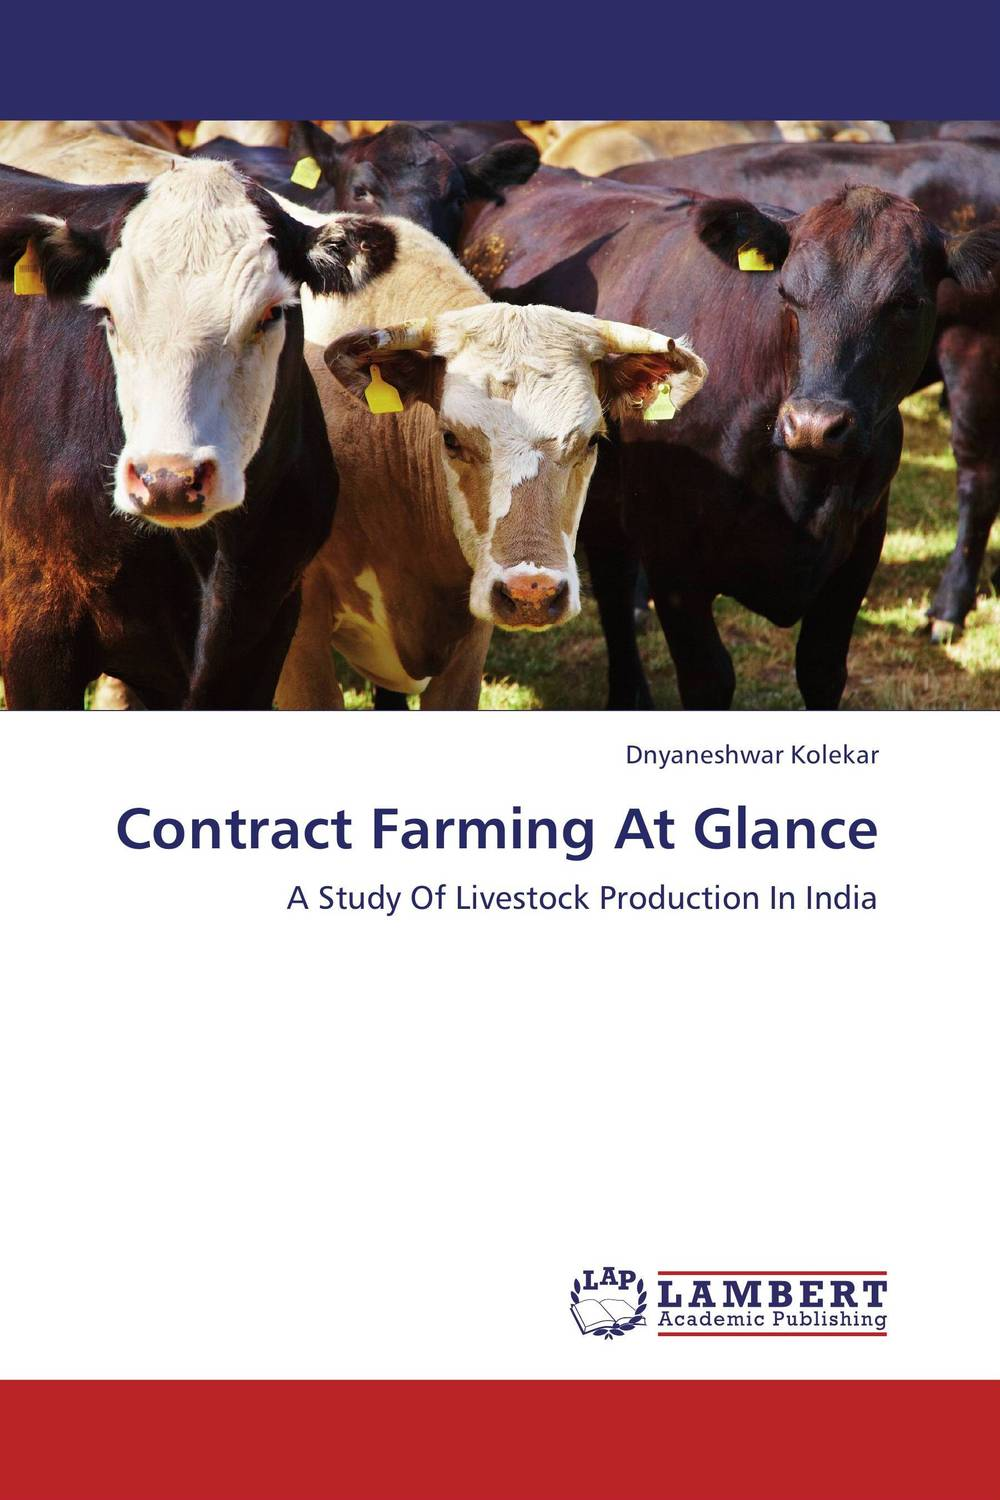 Contract Farming At Glance